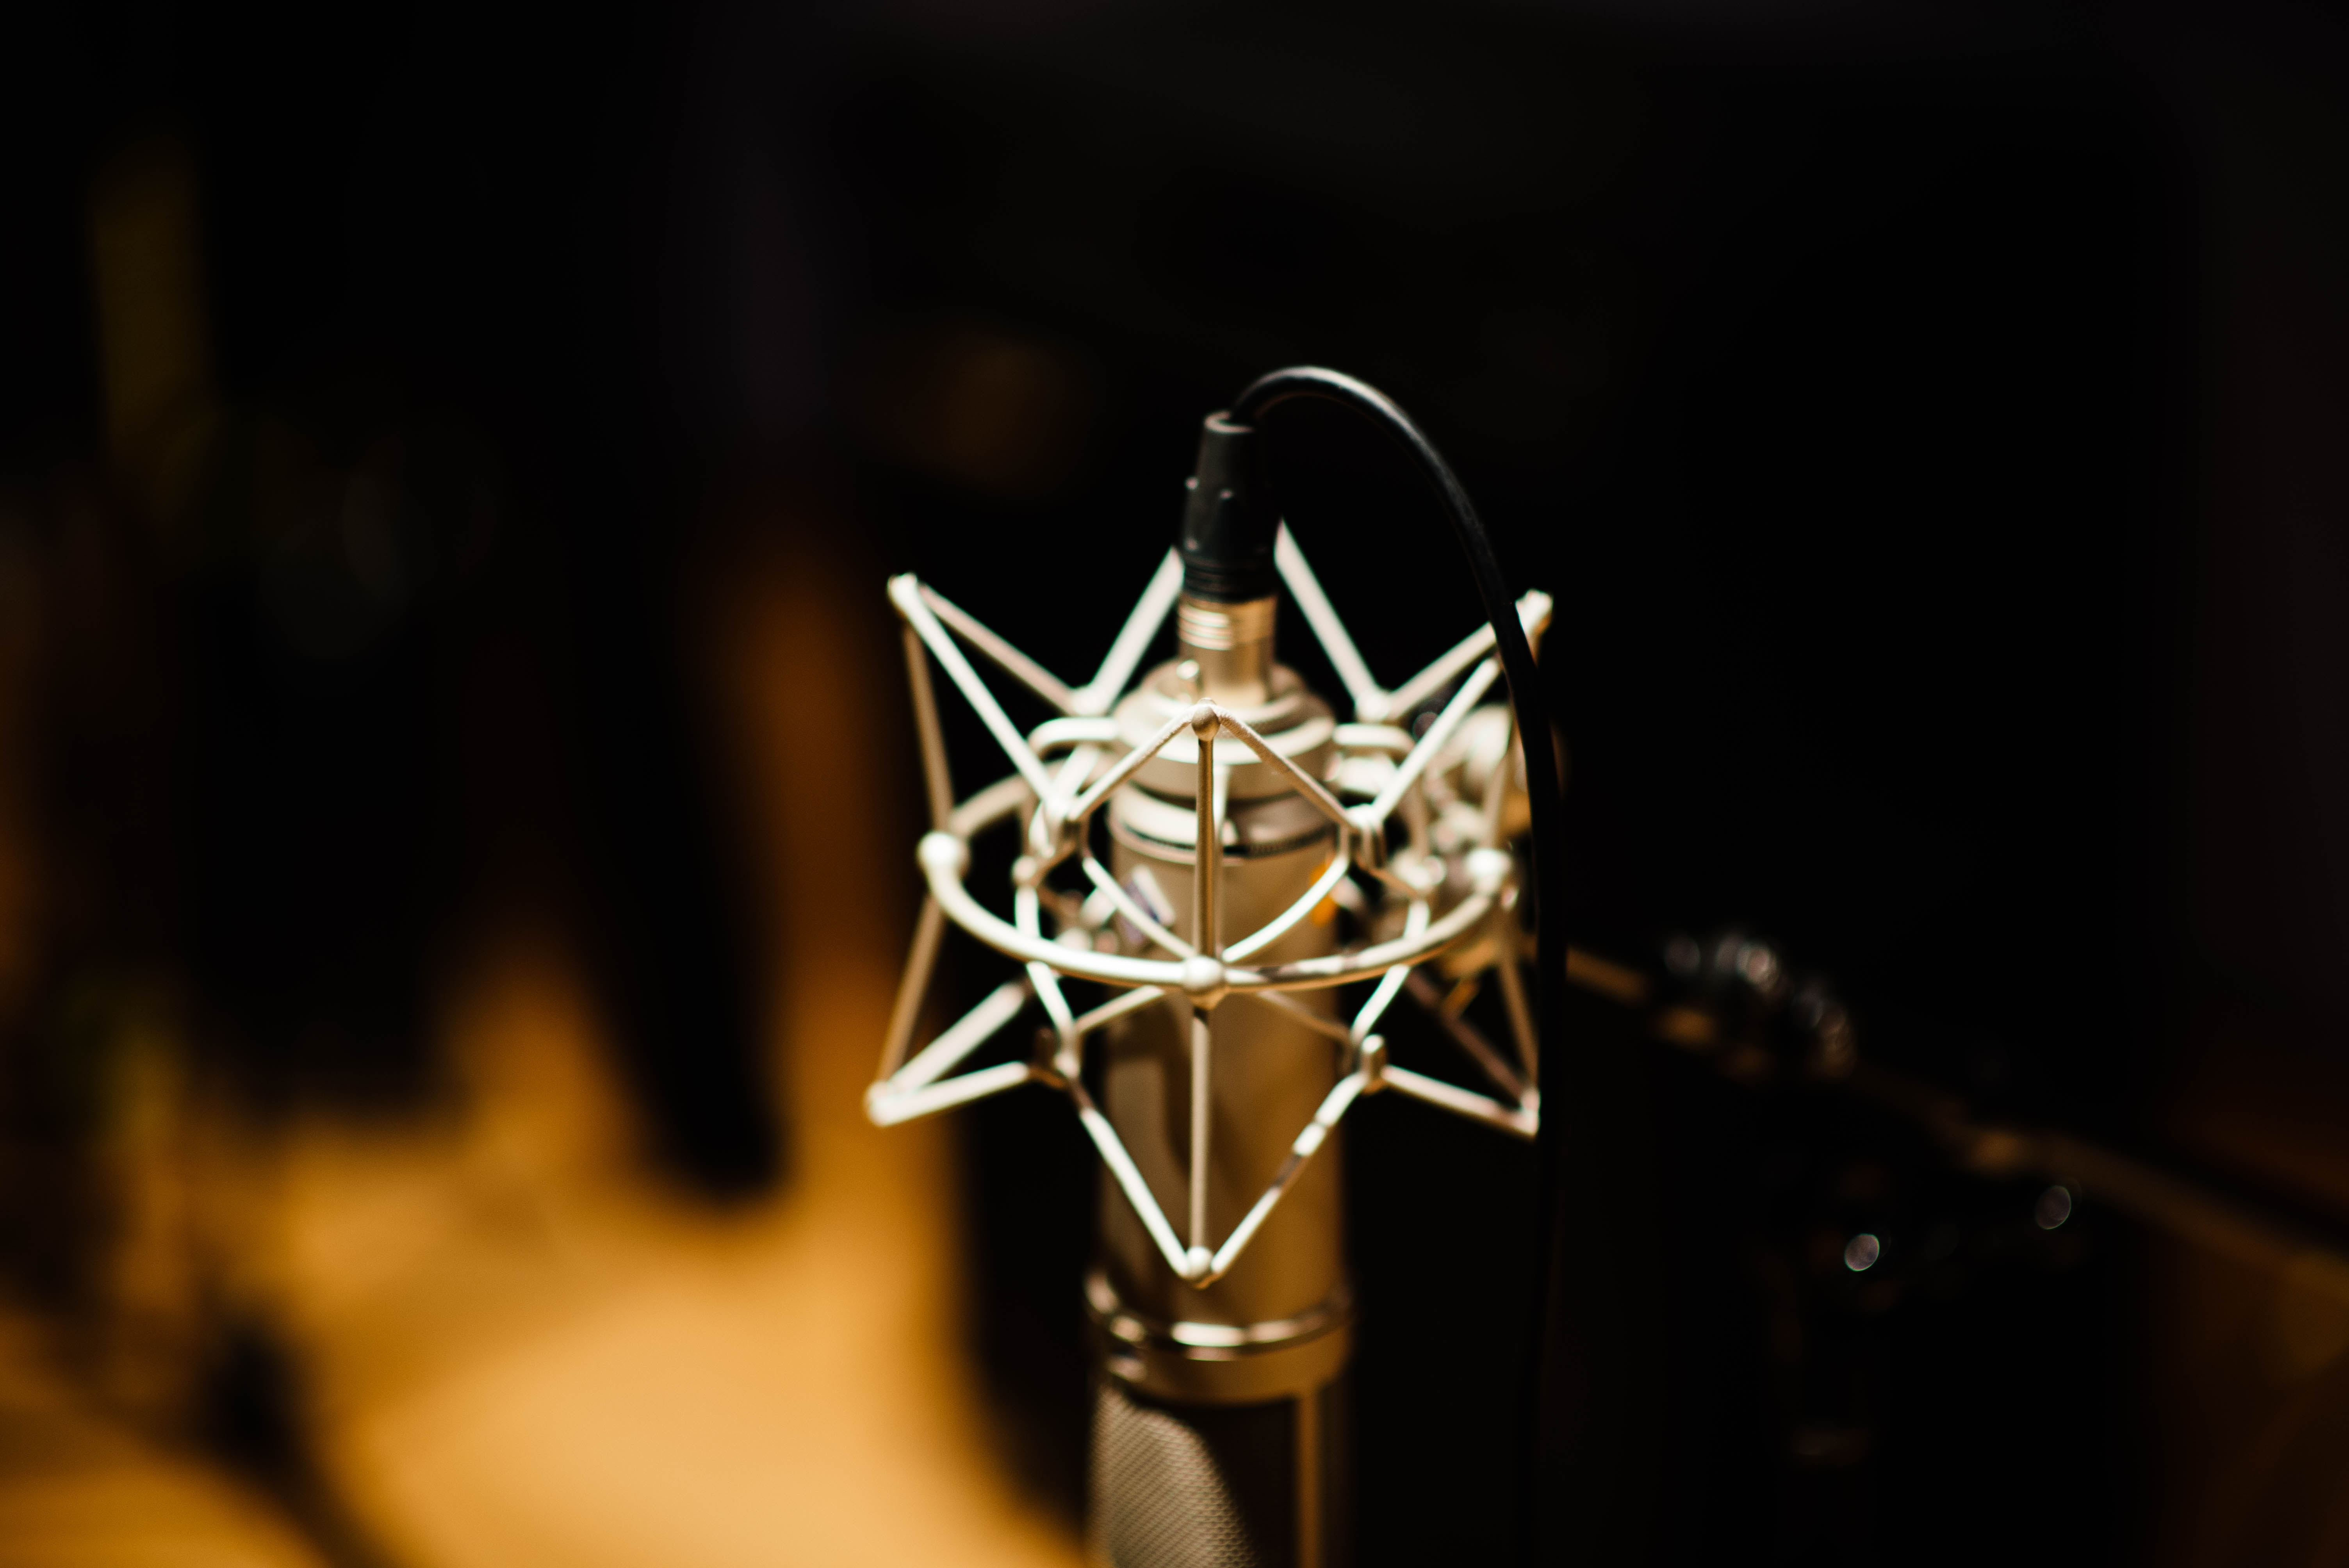 A macro shot of a retro microphone with a blurry dark background